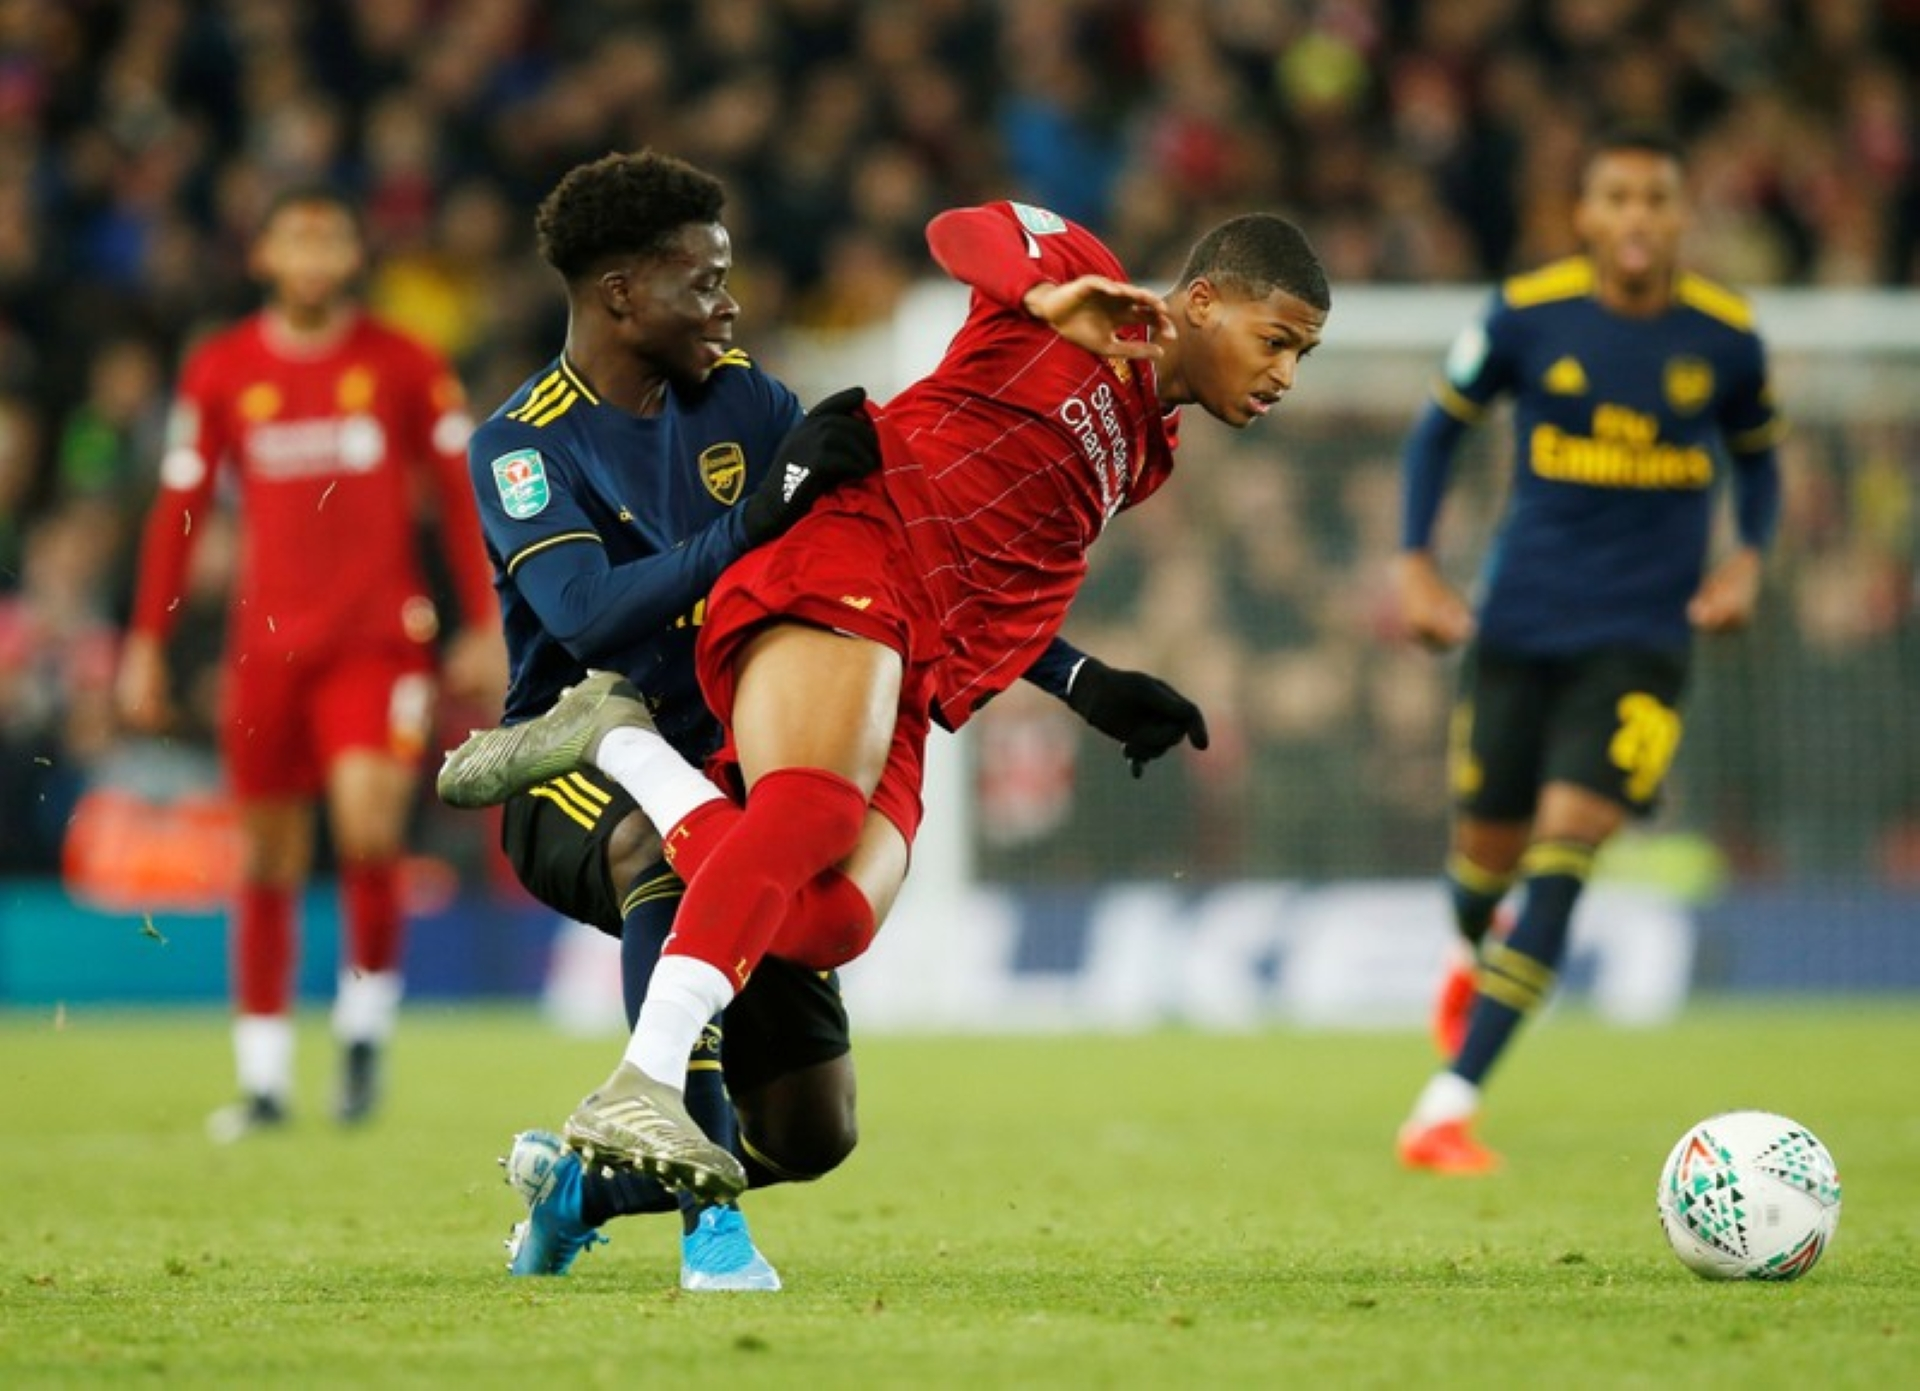 Bukayo Saka Rates High In Arsenal's Carabao Cup Loss To Liverpool